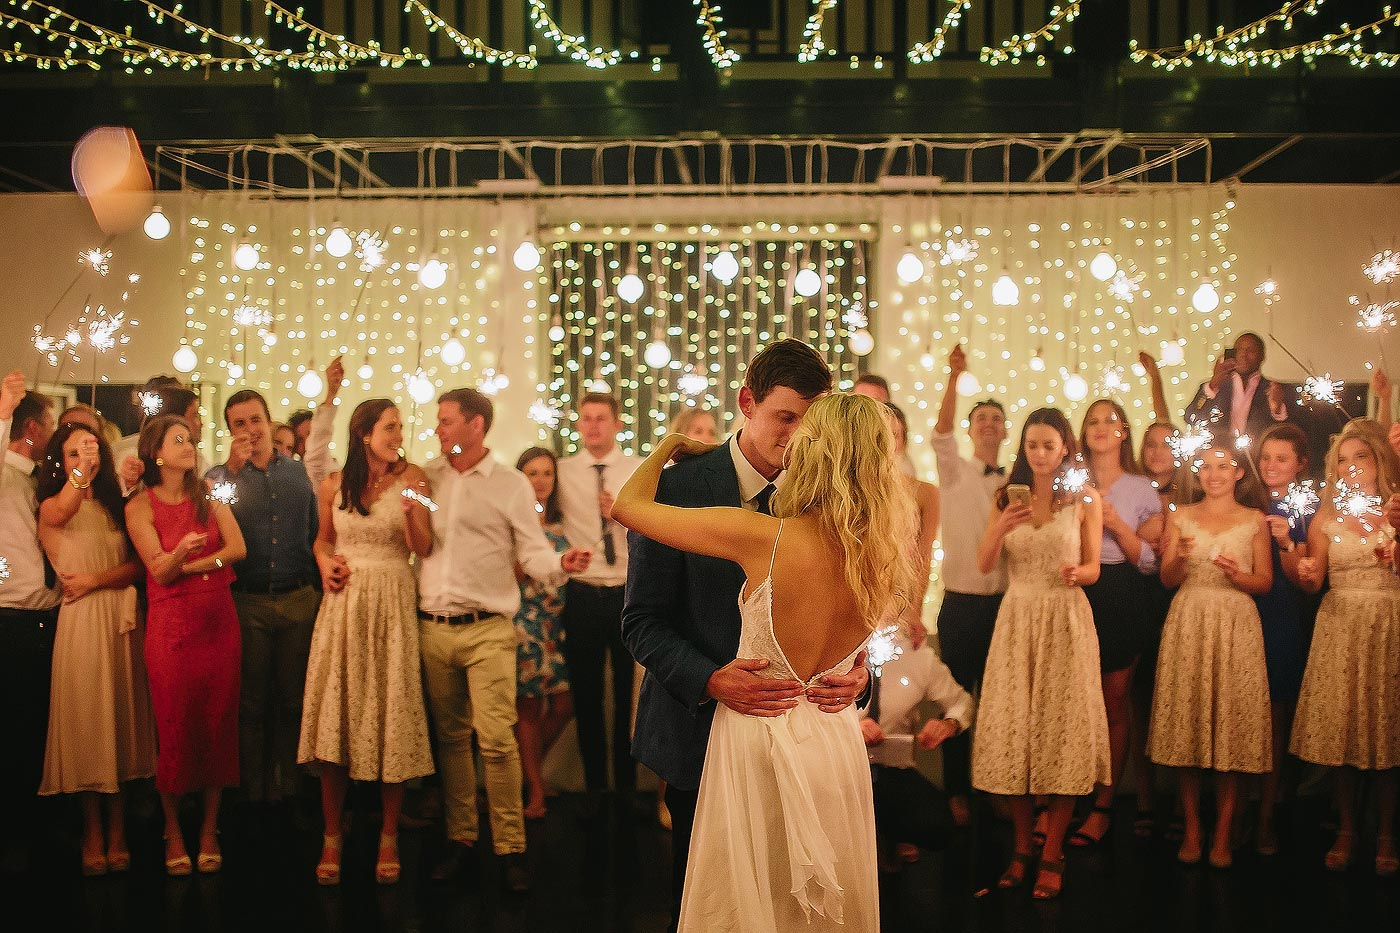 Elegant wedding first dance with fairy lights in Plettenberg Bay South Africa.